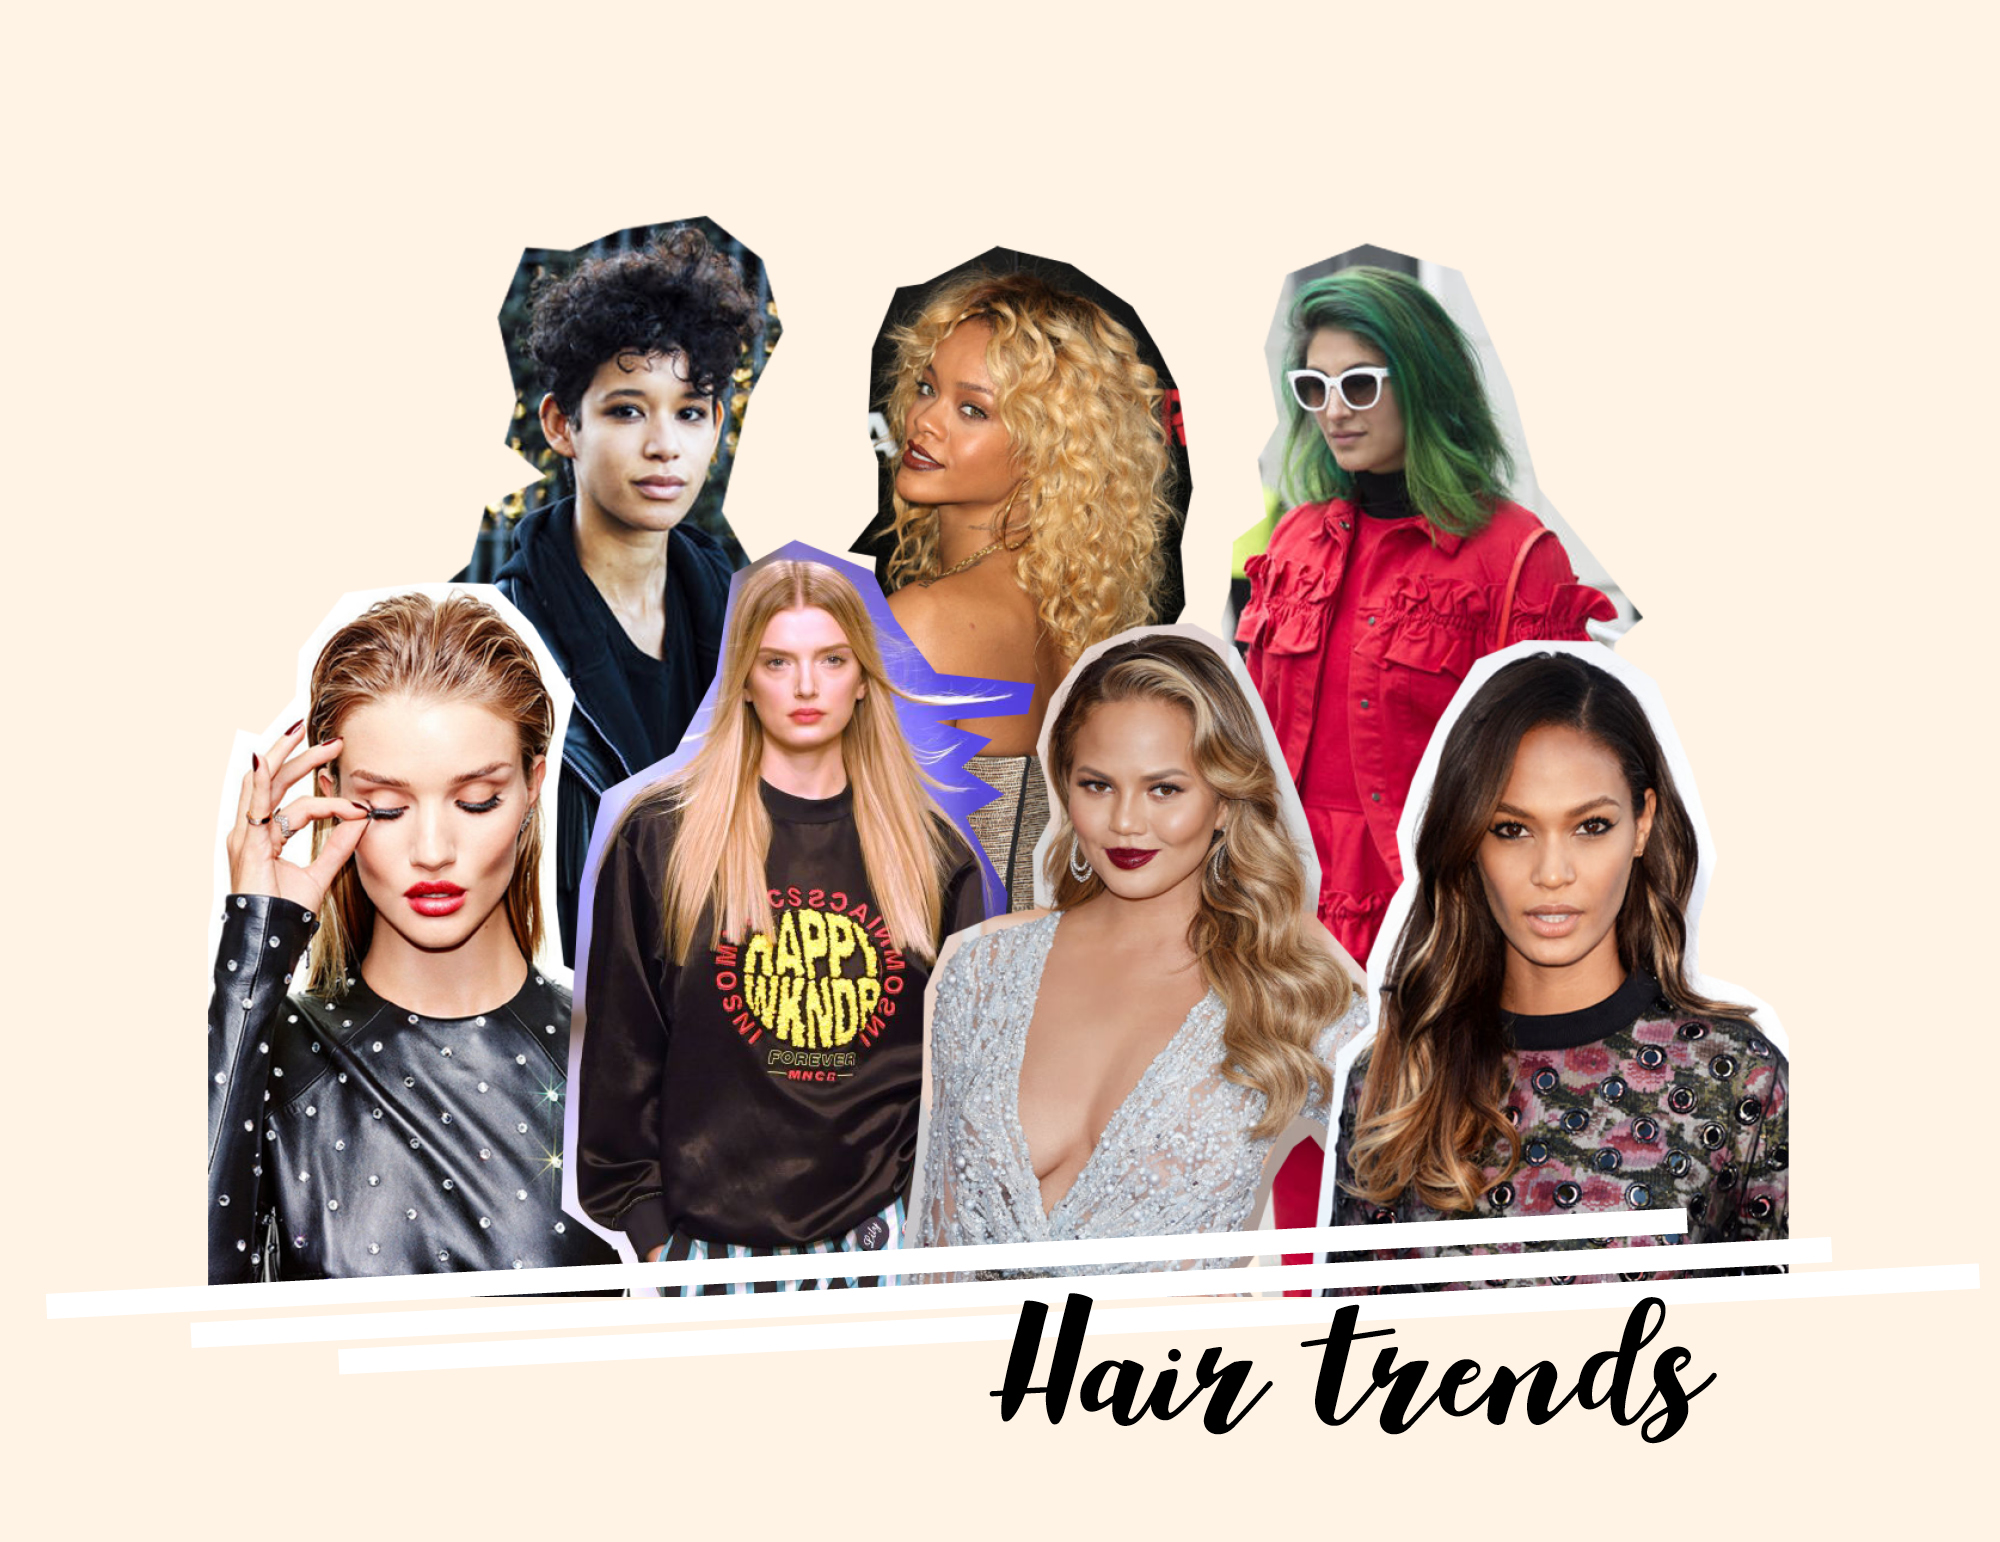 Hairforce 1 trends